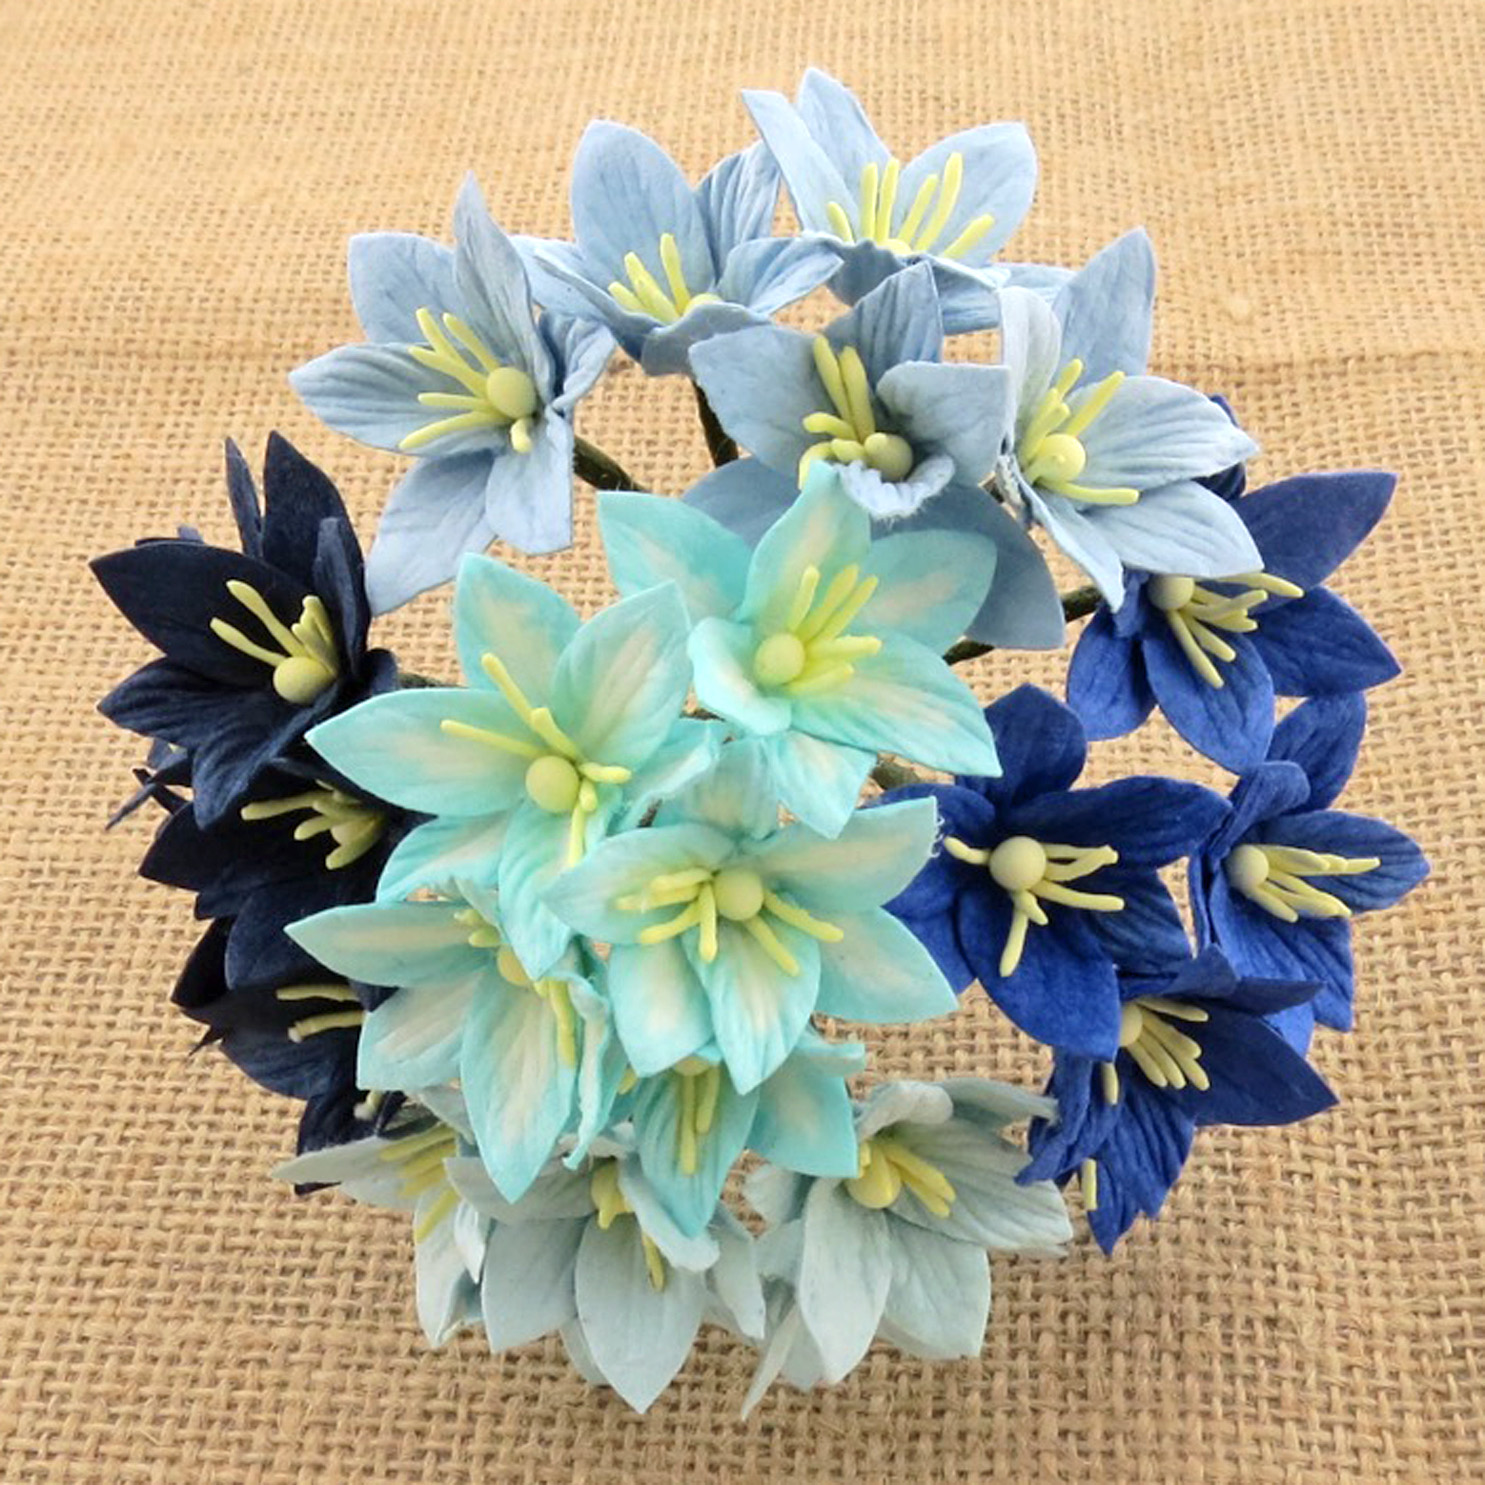 50 MIXED BLUE MULBERRY PAPER LILY FLOWERS - 5 COLOR